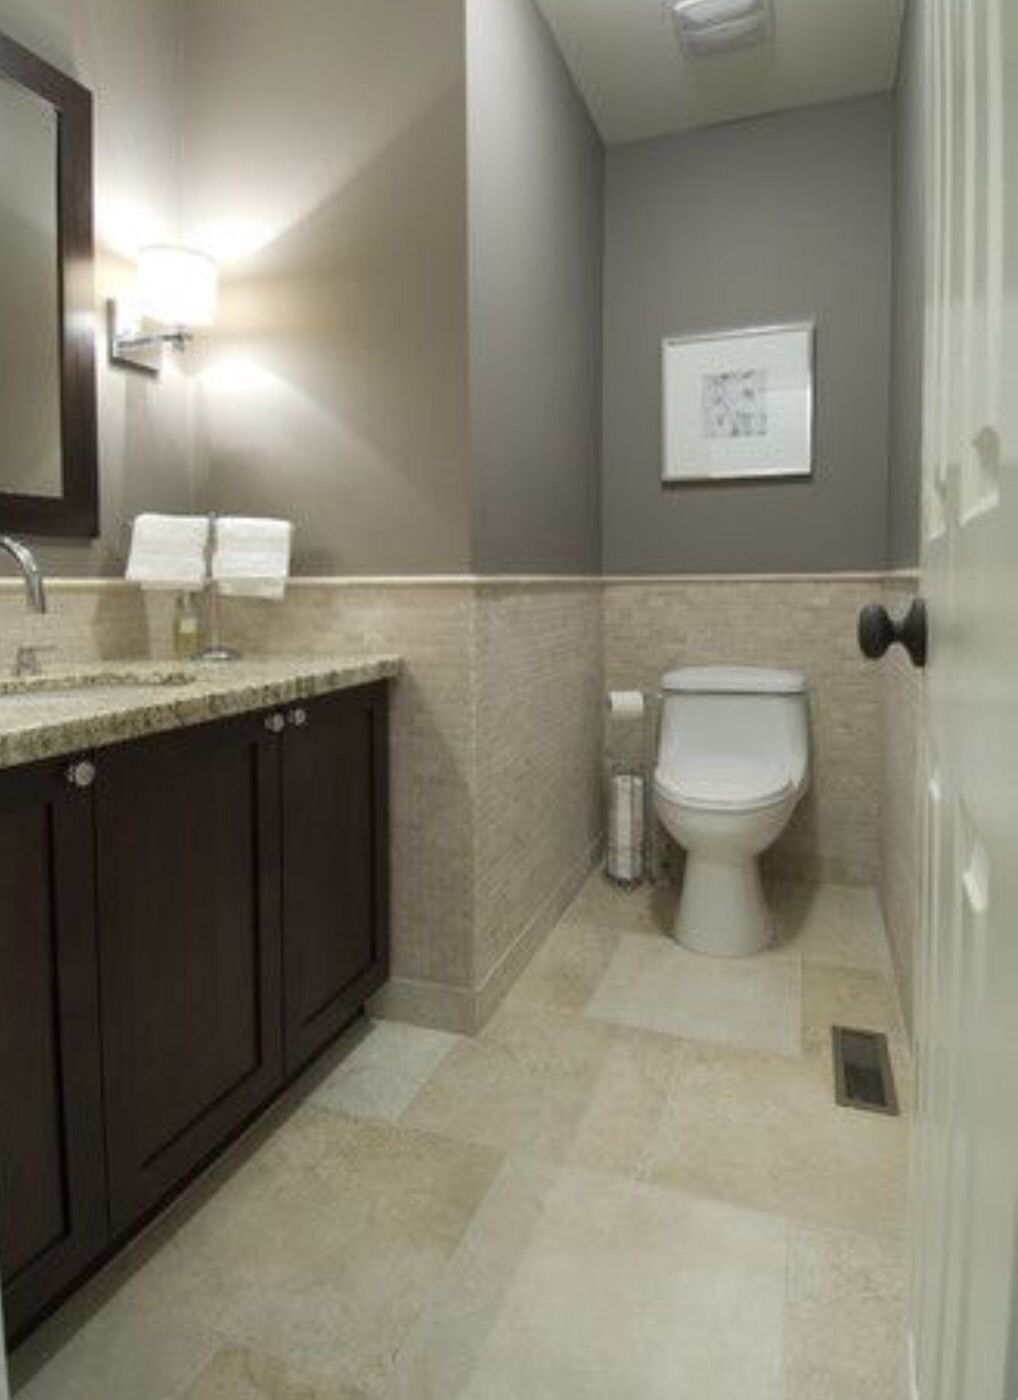 Half Tile Wall Around Toilet A Must Have In Small Spaces Beige Tile Bathroom Bathroom Colors Bathroom Color Schemes